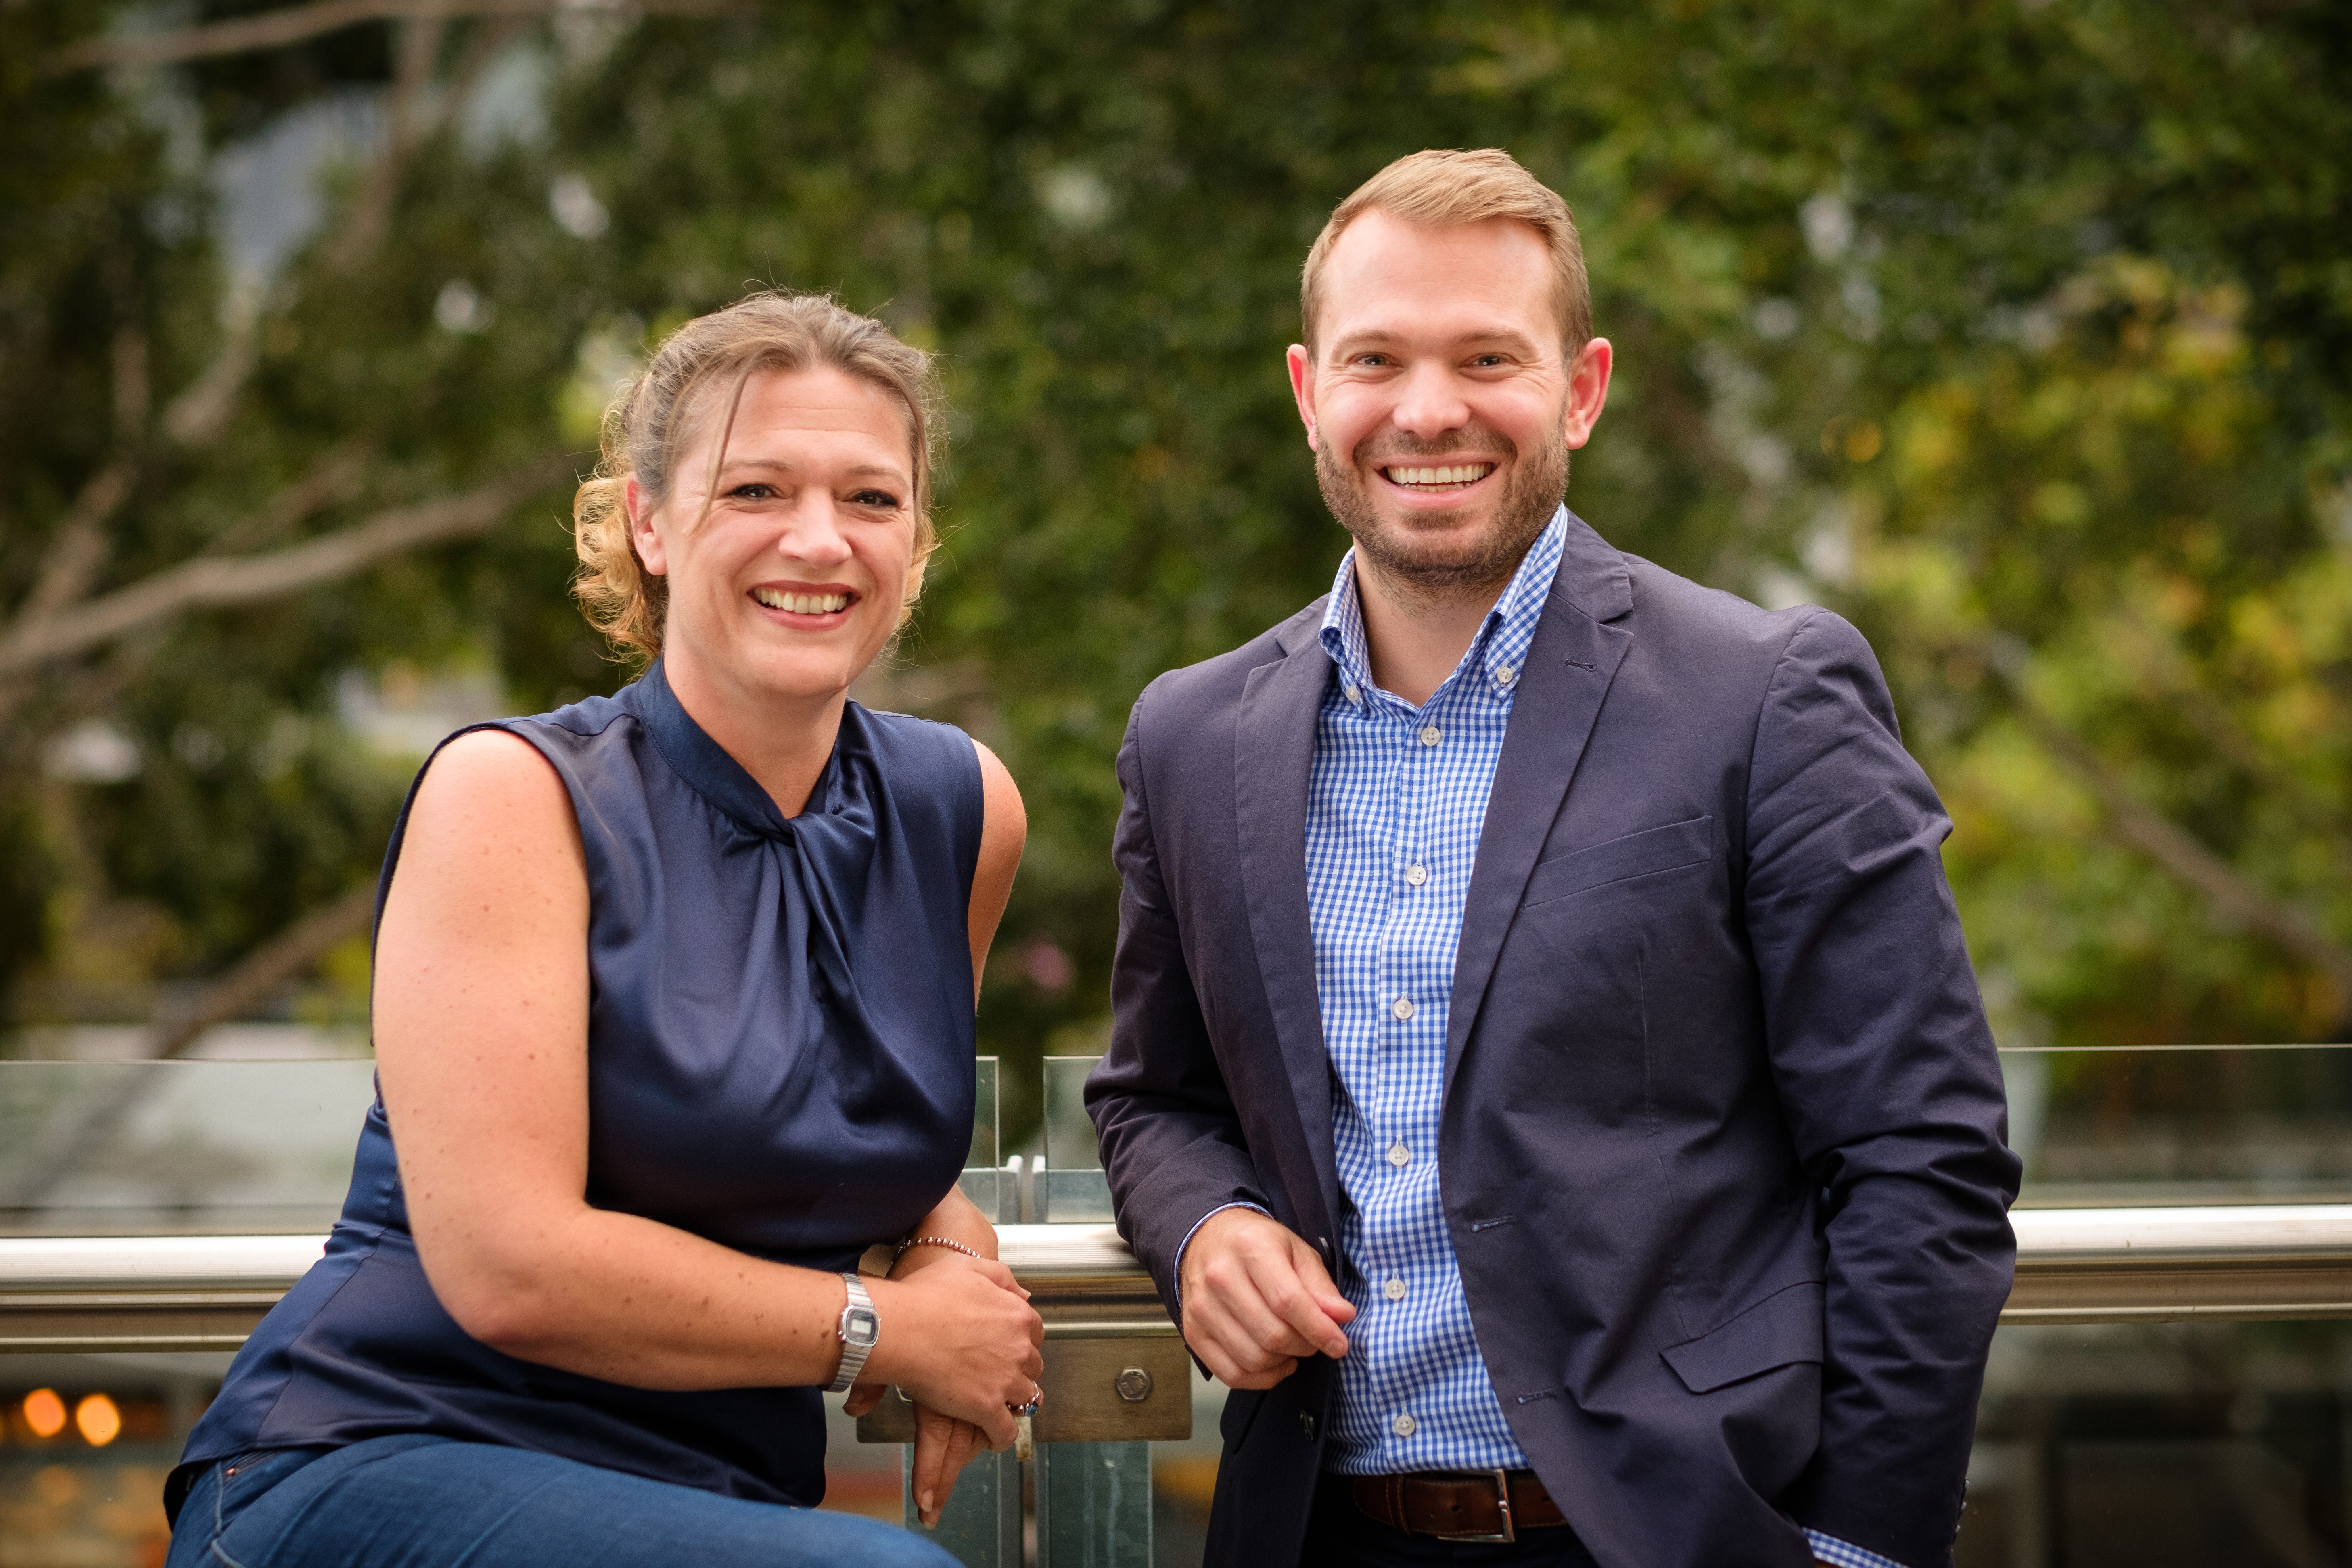 Kirsty Robinson joins VMLY&R Brisbane from Deloitte Australia in head of experience role